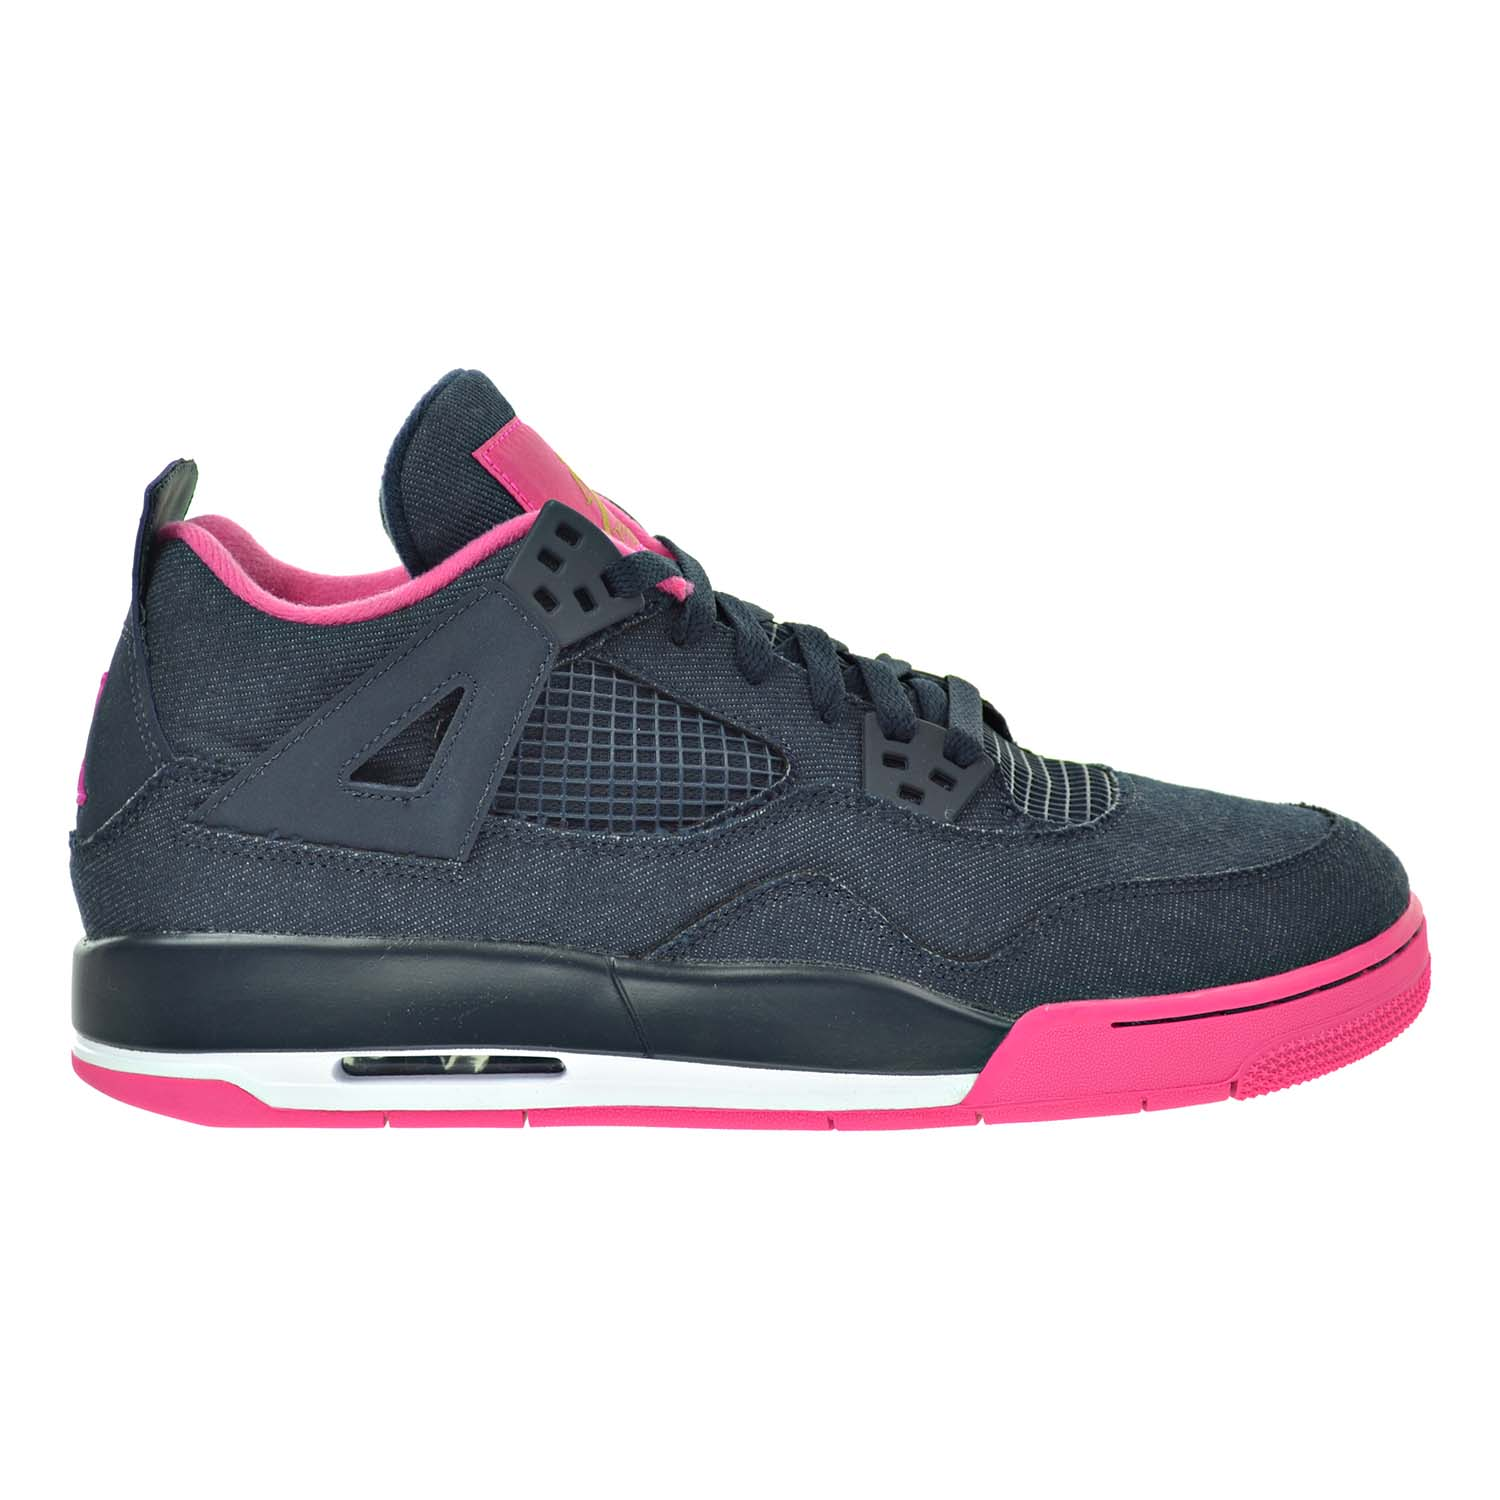 eed981f72bc Details about Air Jordan 4 Retro GG Big Kid's Shoes Dark  Obsidian/Gold/Pink/White 487724-408